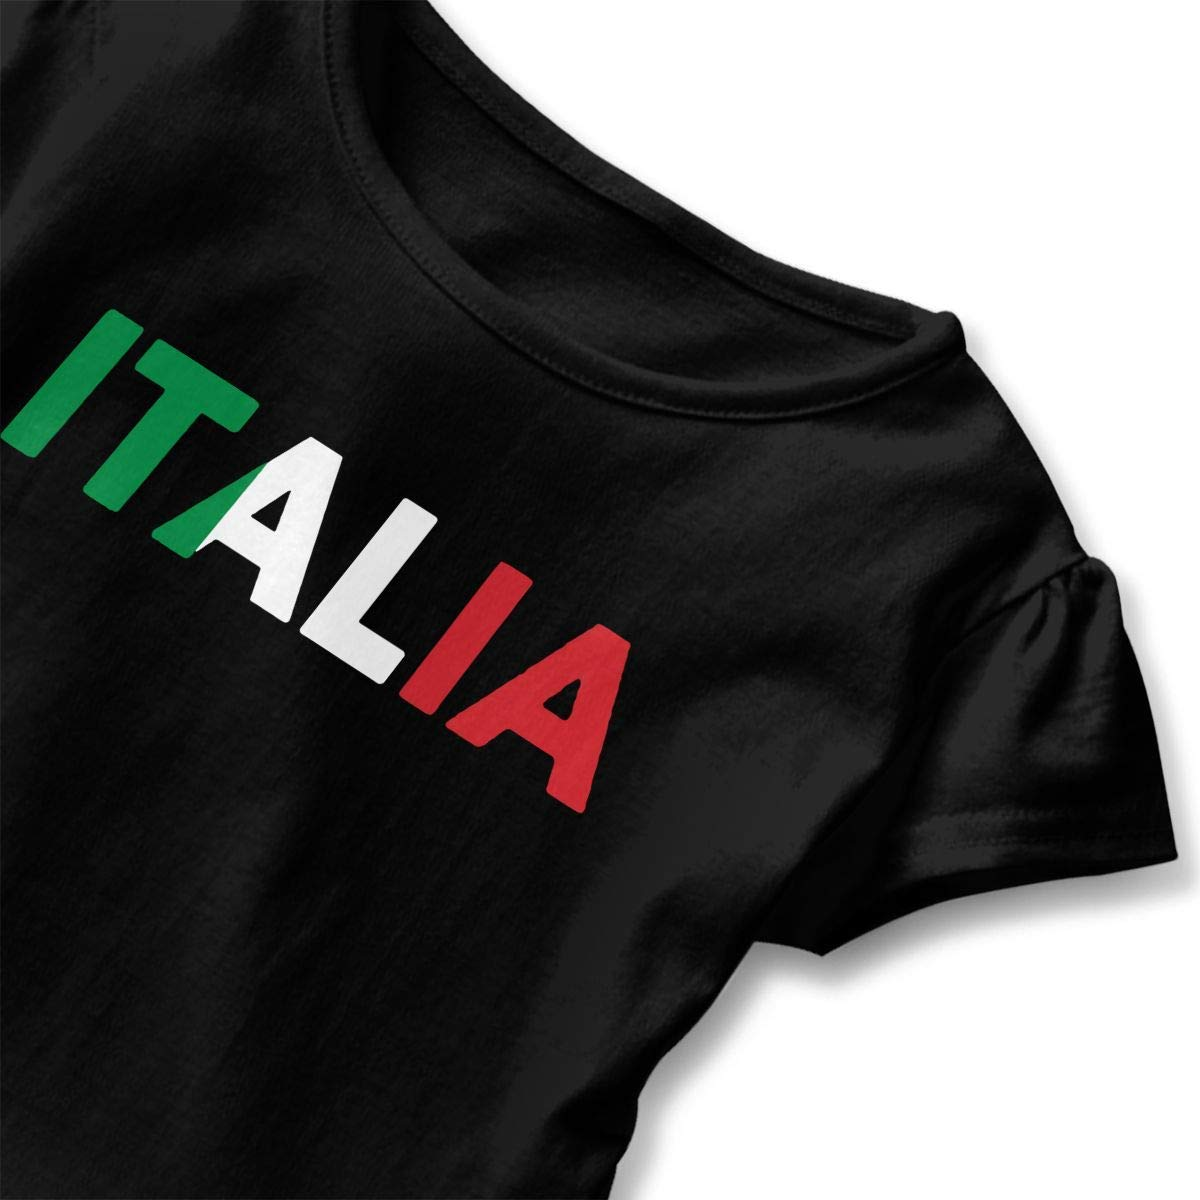 TCJX Italia Italy Italian Flag Toddler//Infant Girls Short Sleeve Ruffles Shirt Tee Jersey for 2-6 Toddlers